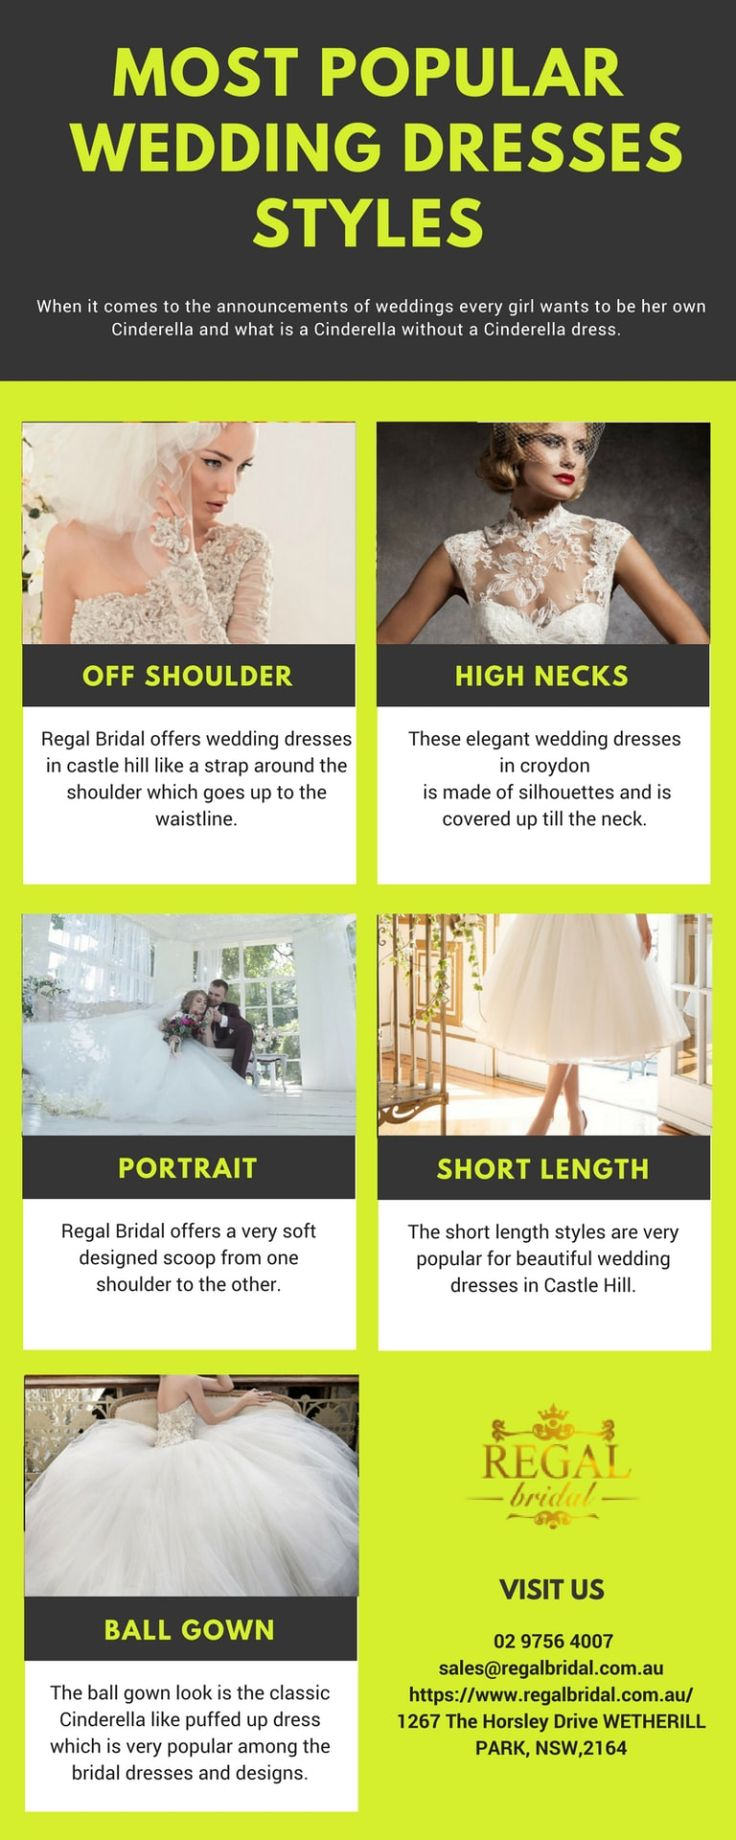 Popular Wedding Dresses Styles- Regal Bridal Regal Bridal brings a very elegant and spellbinding range of #weddingdresses. We have a collection of #weddinggowns and dresses that will make your day even more special.